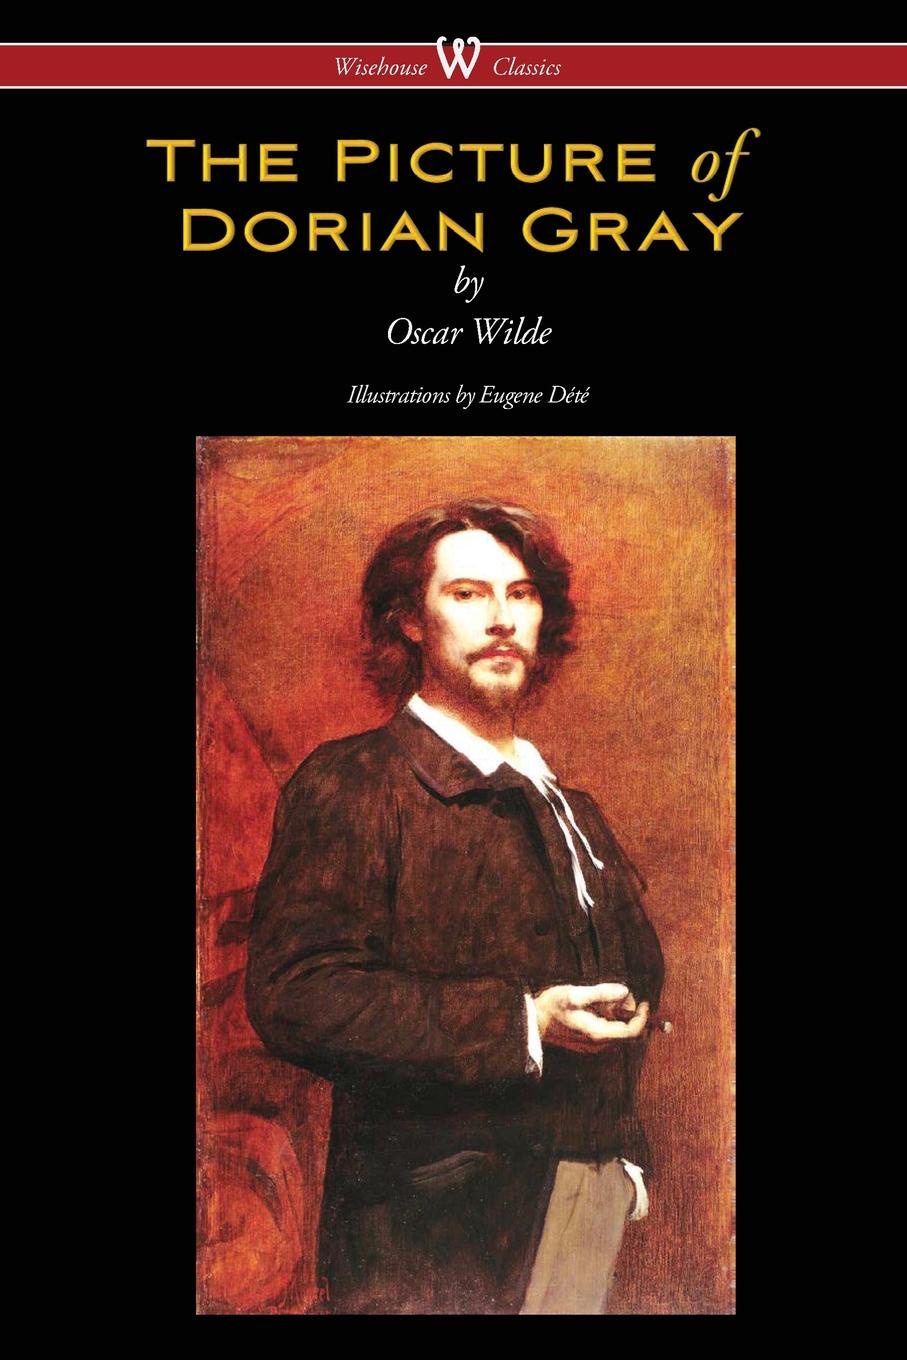 Oscar Wilde The Picture of Dorian Gray (Wisehouse Classics - with original illustrations by Eugene Dete) o wilde the picture of dorian gray